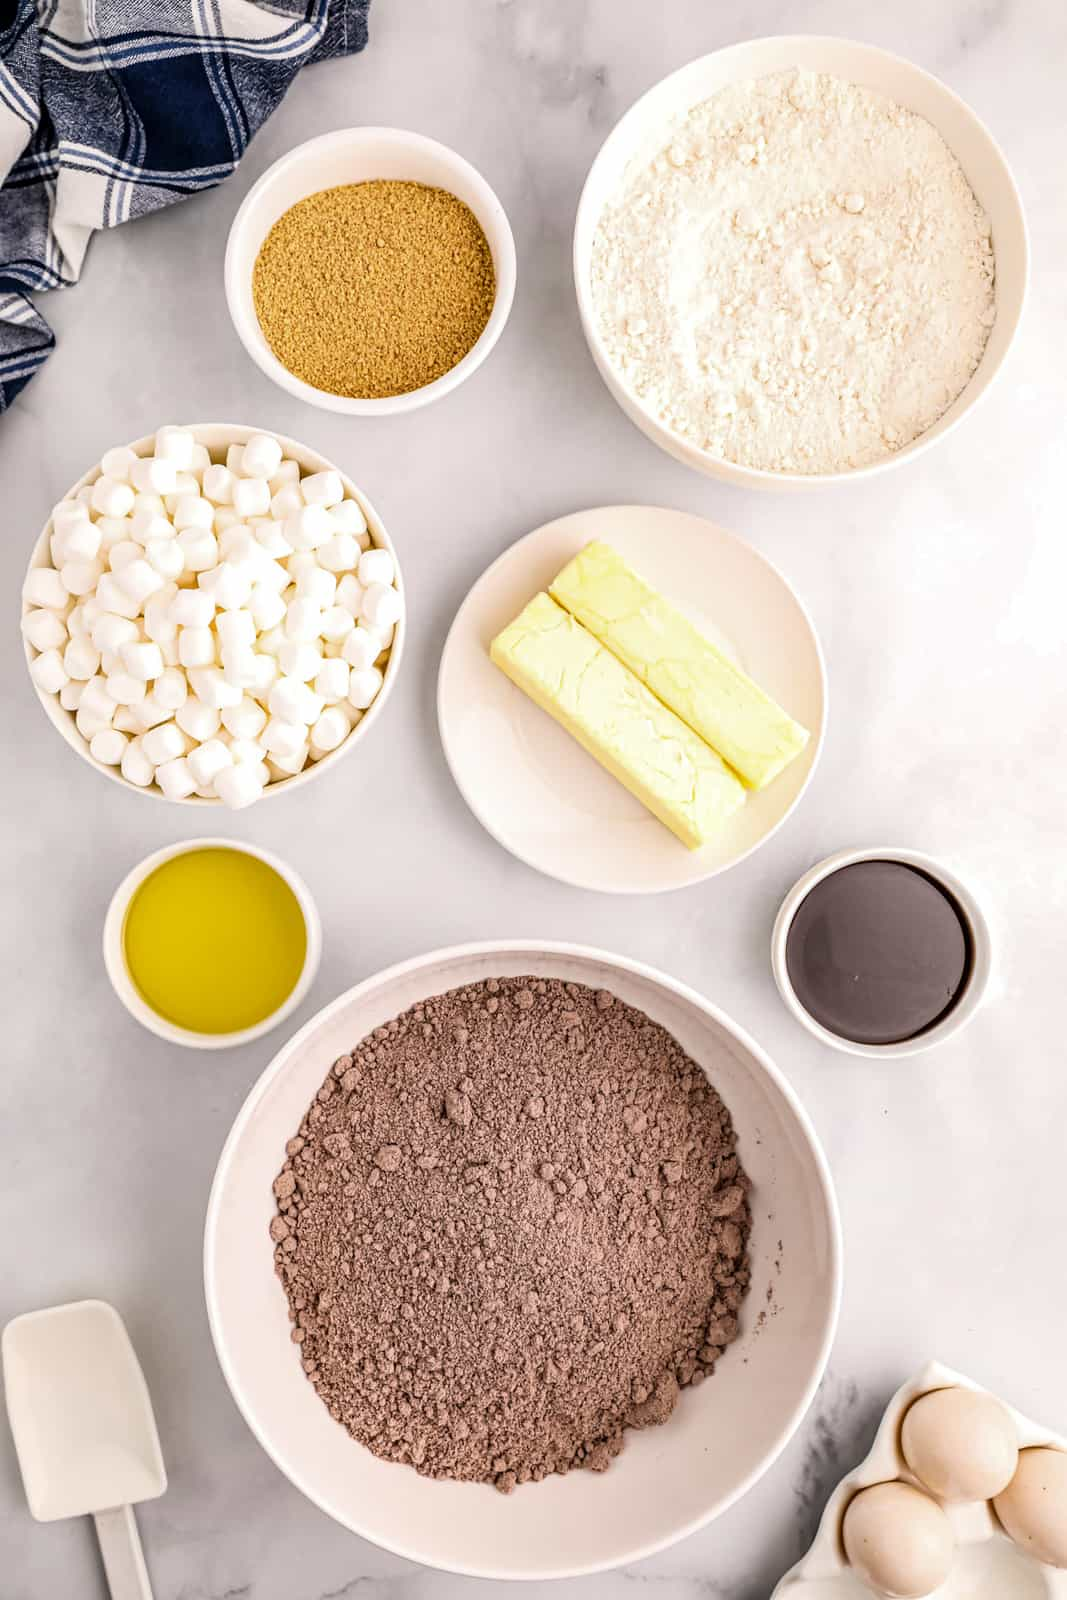 Ingredients needed to make S'mores Bars